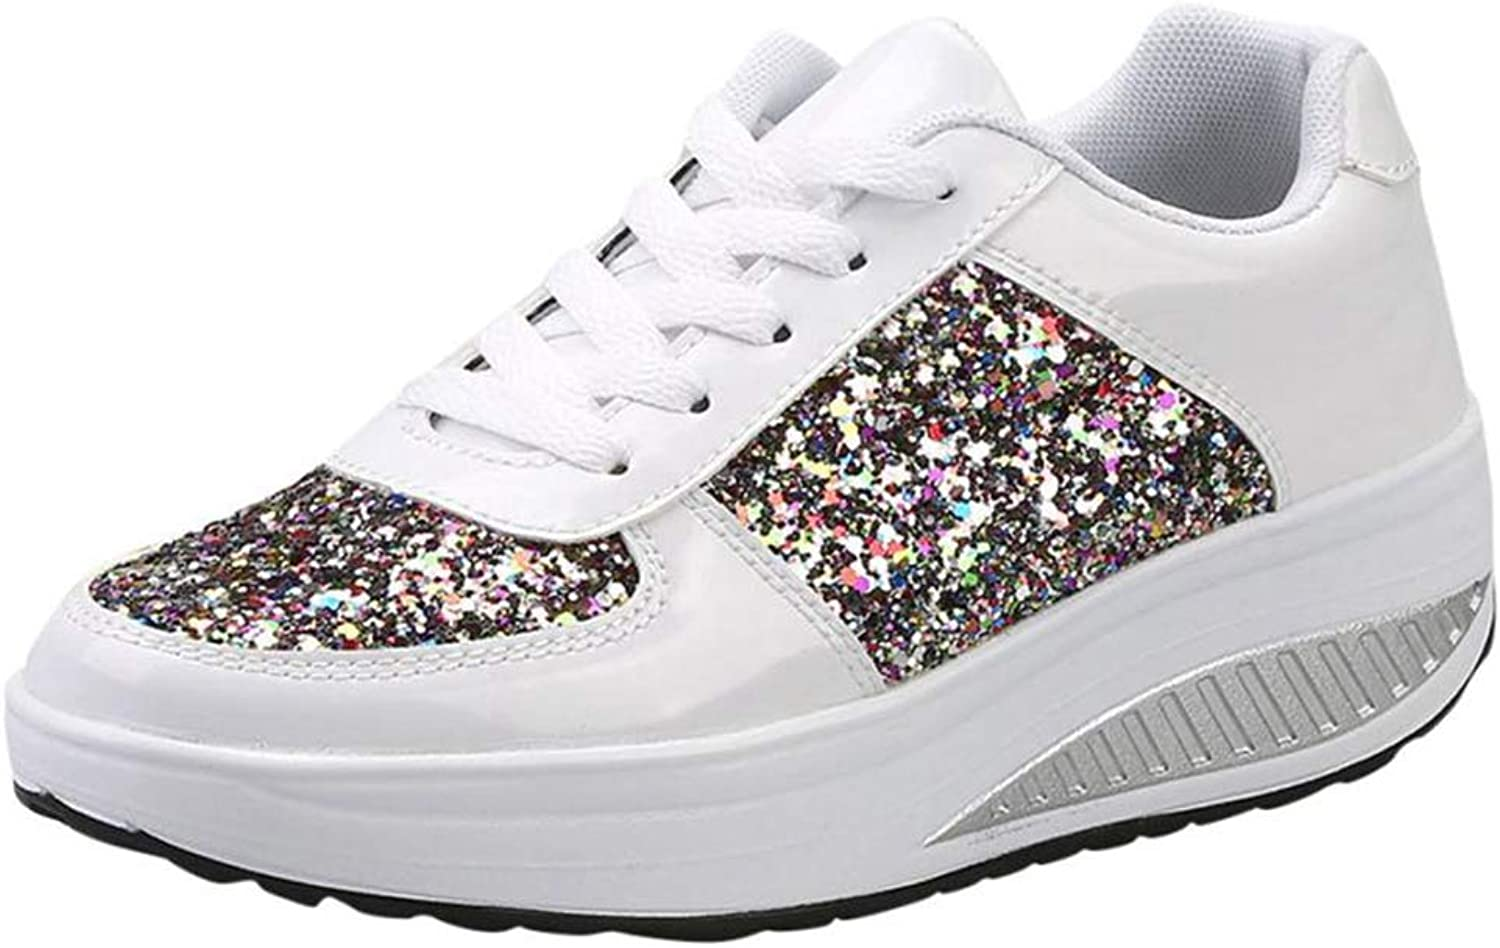 ASO-SLING Women's Vulcanize Wedges Sneakers Diamond Height Increasing Breathable Casual Lightweight Walking shoes